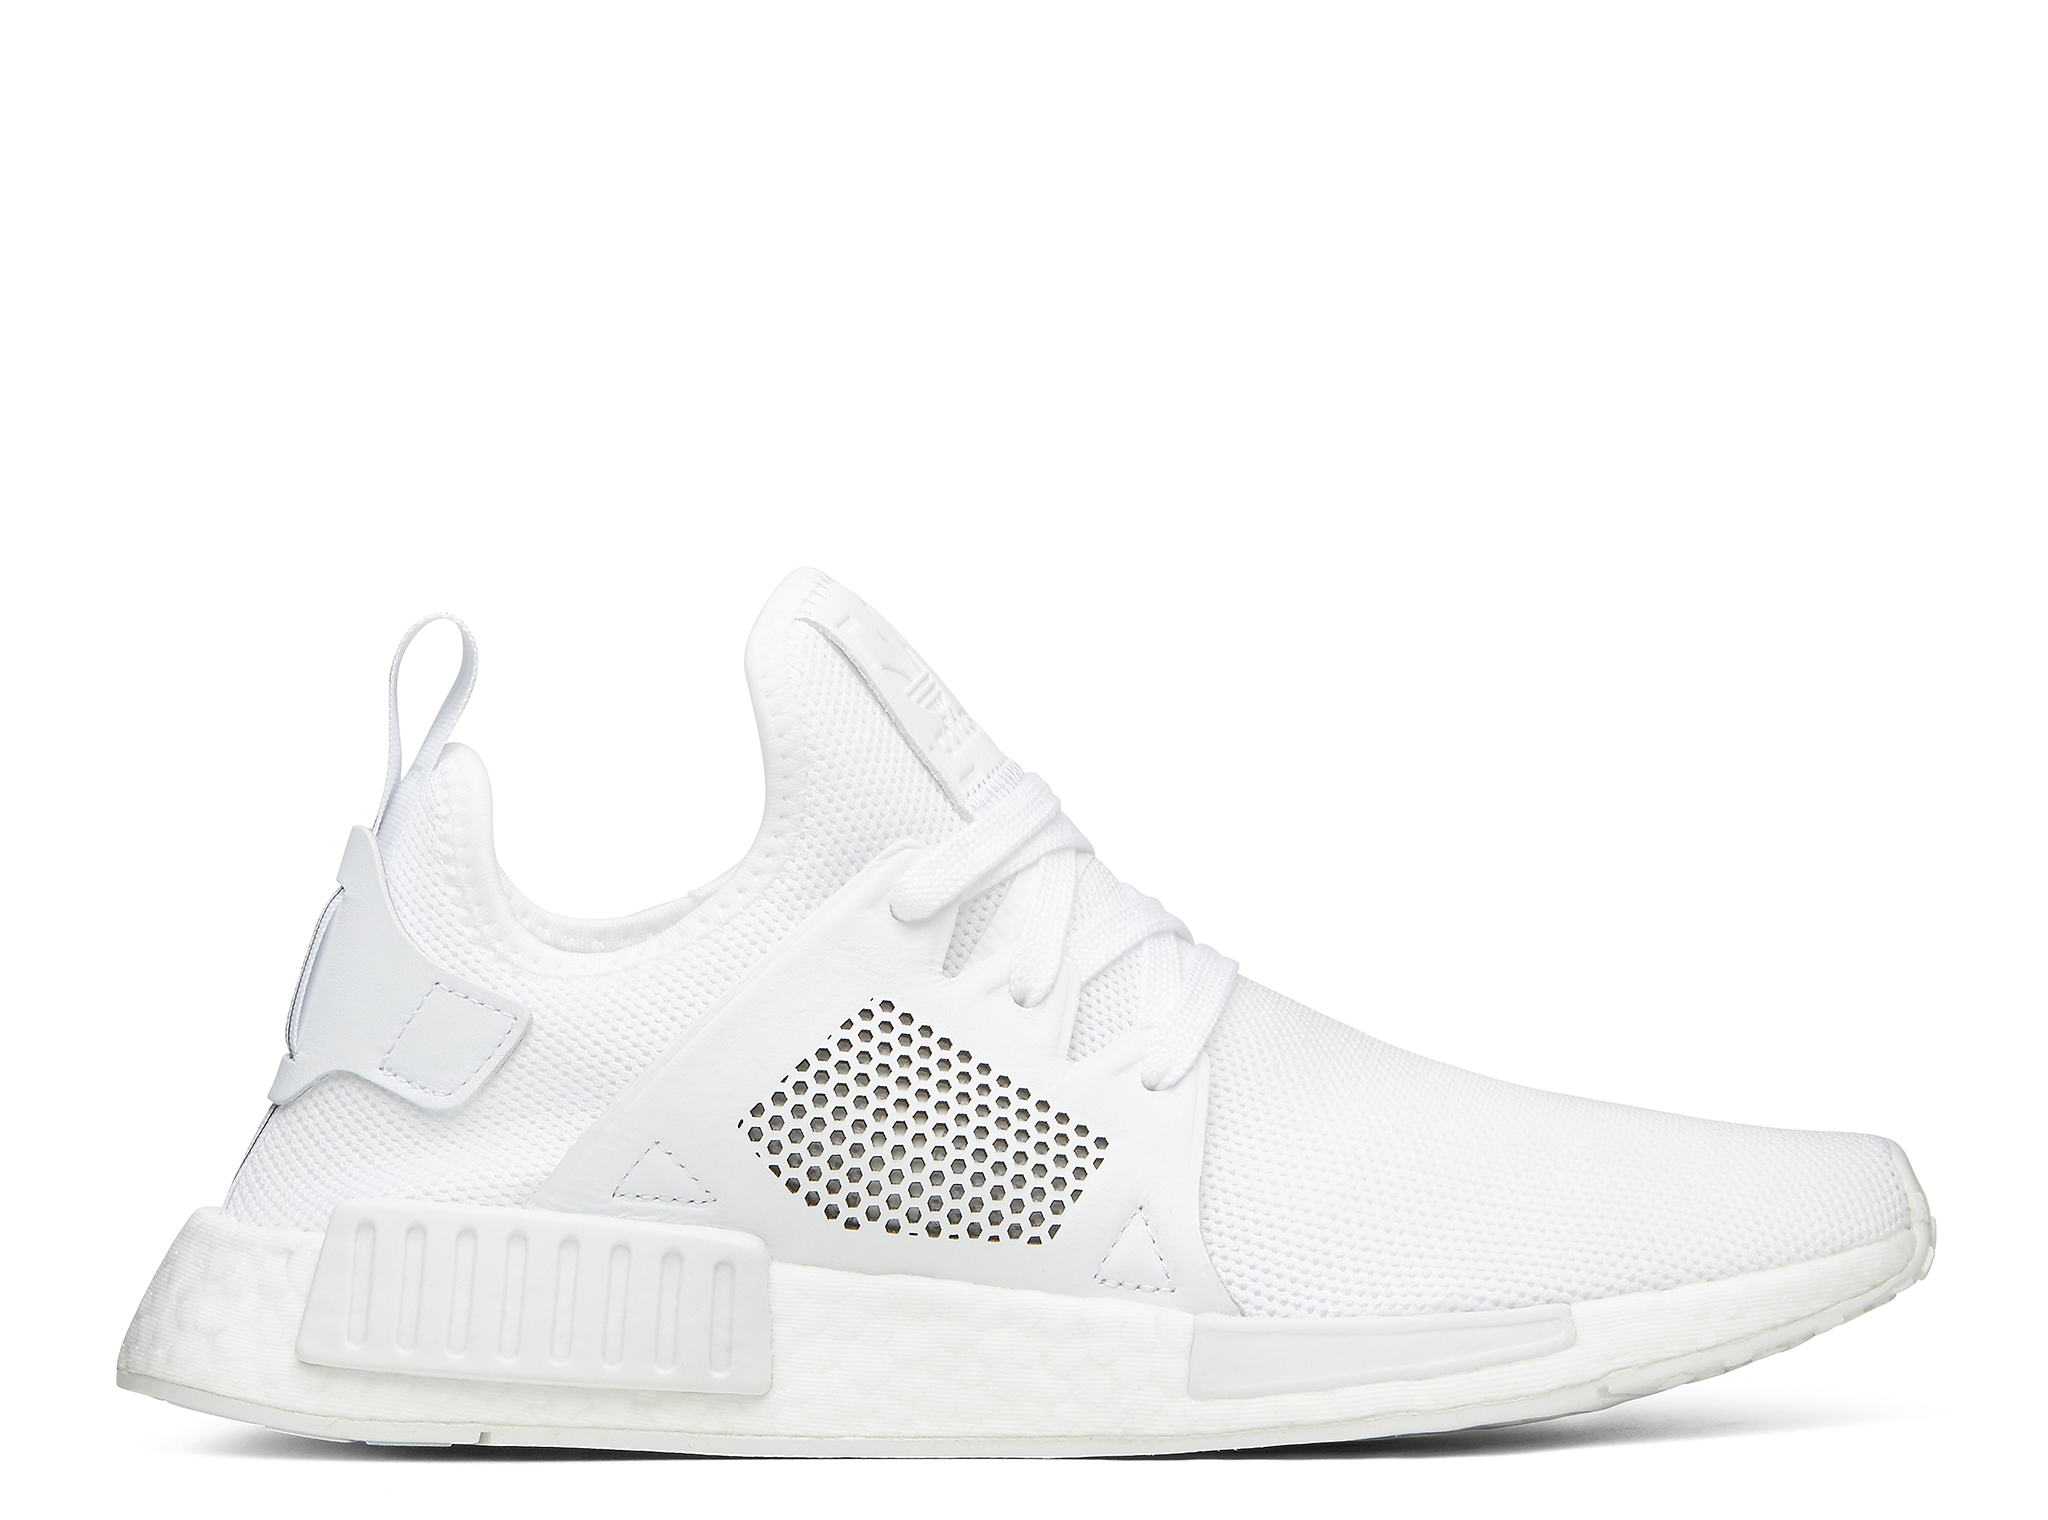 Holiday Sale: Adidas Men's Nmd Runner XR1 Casual Sneakers from